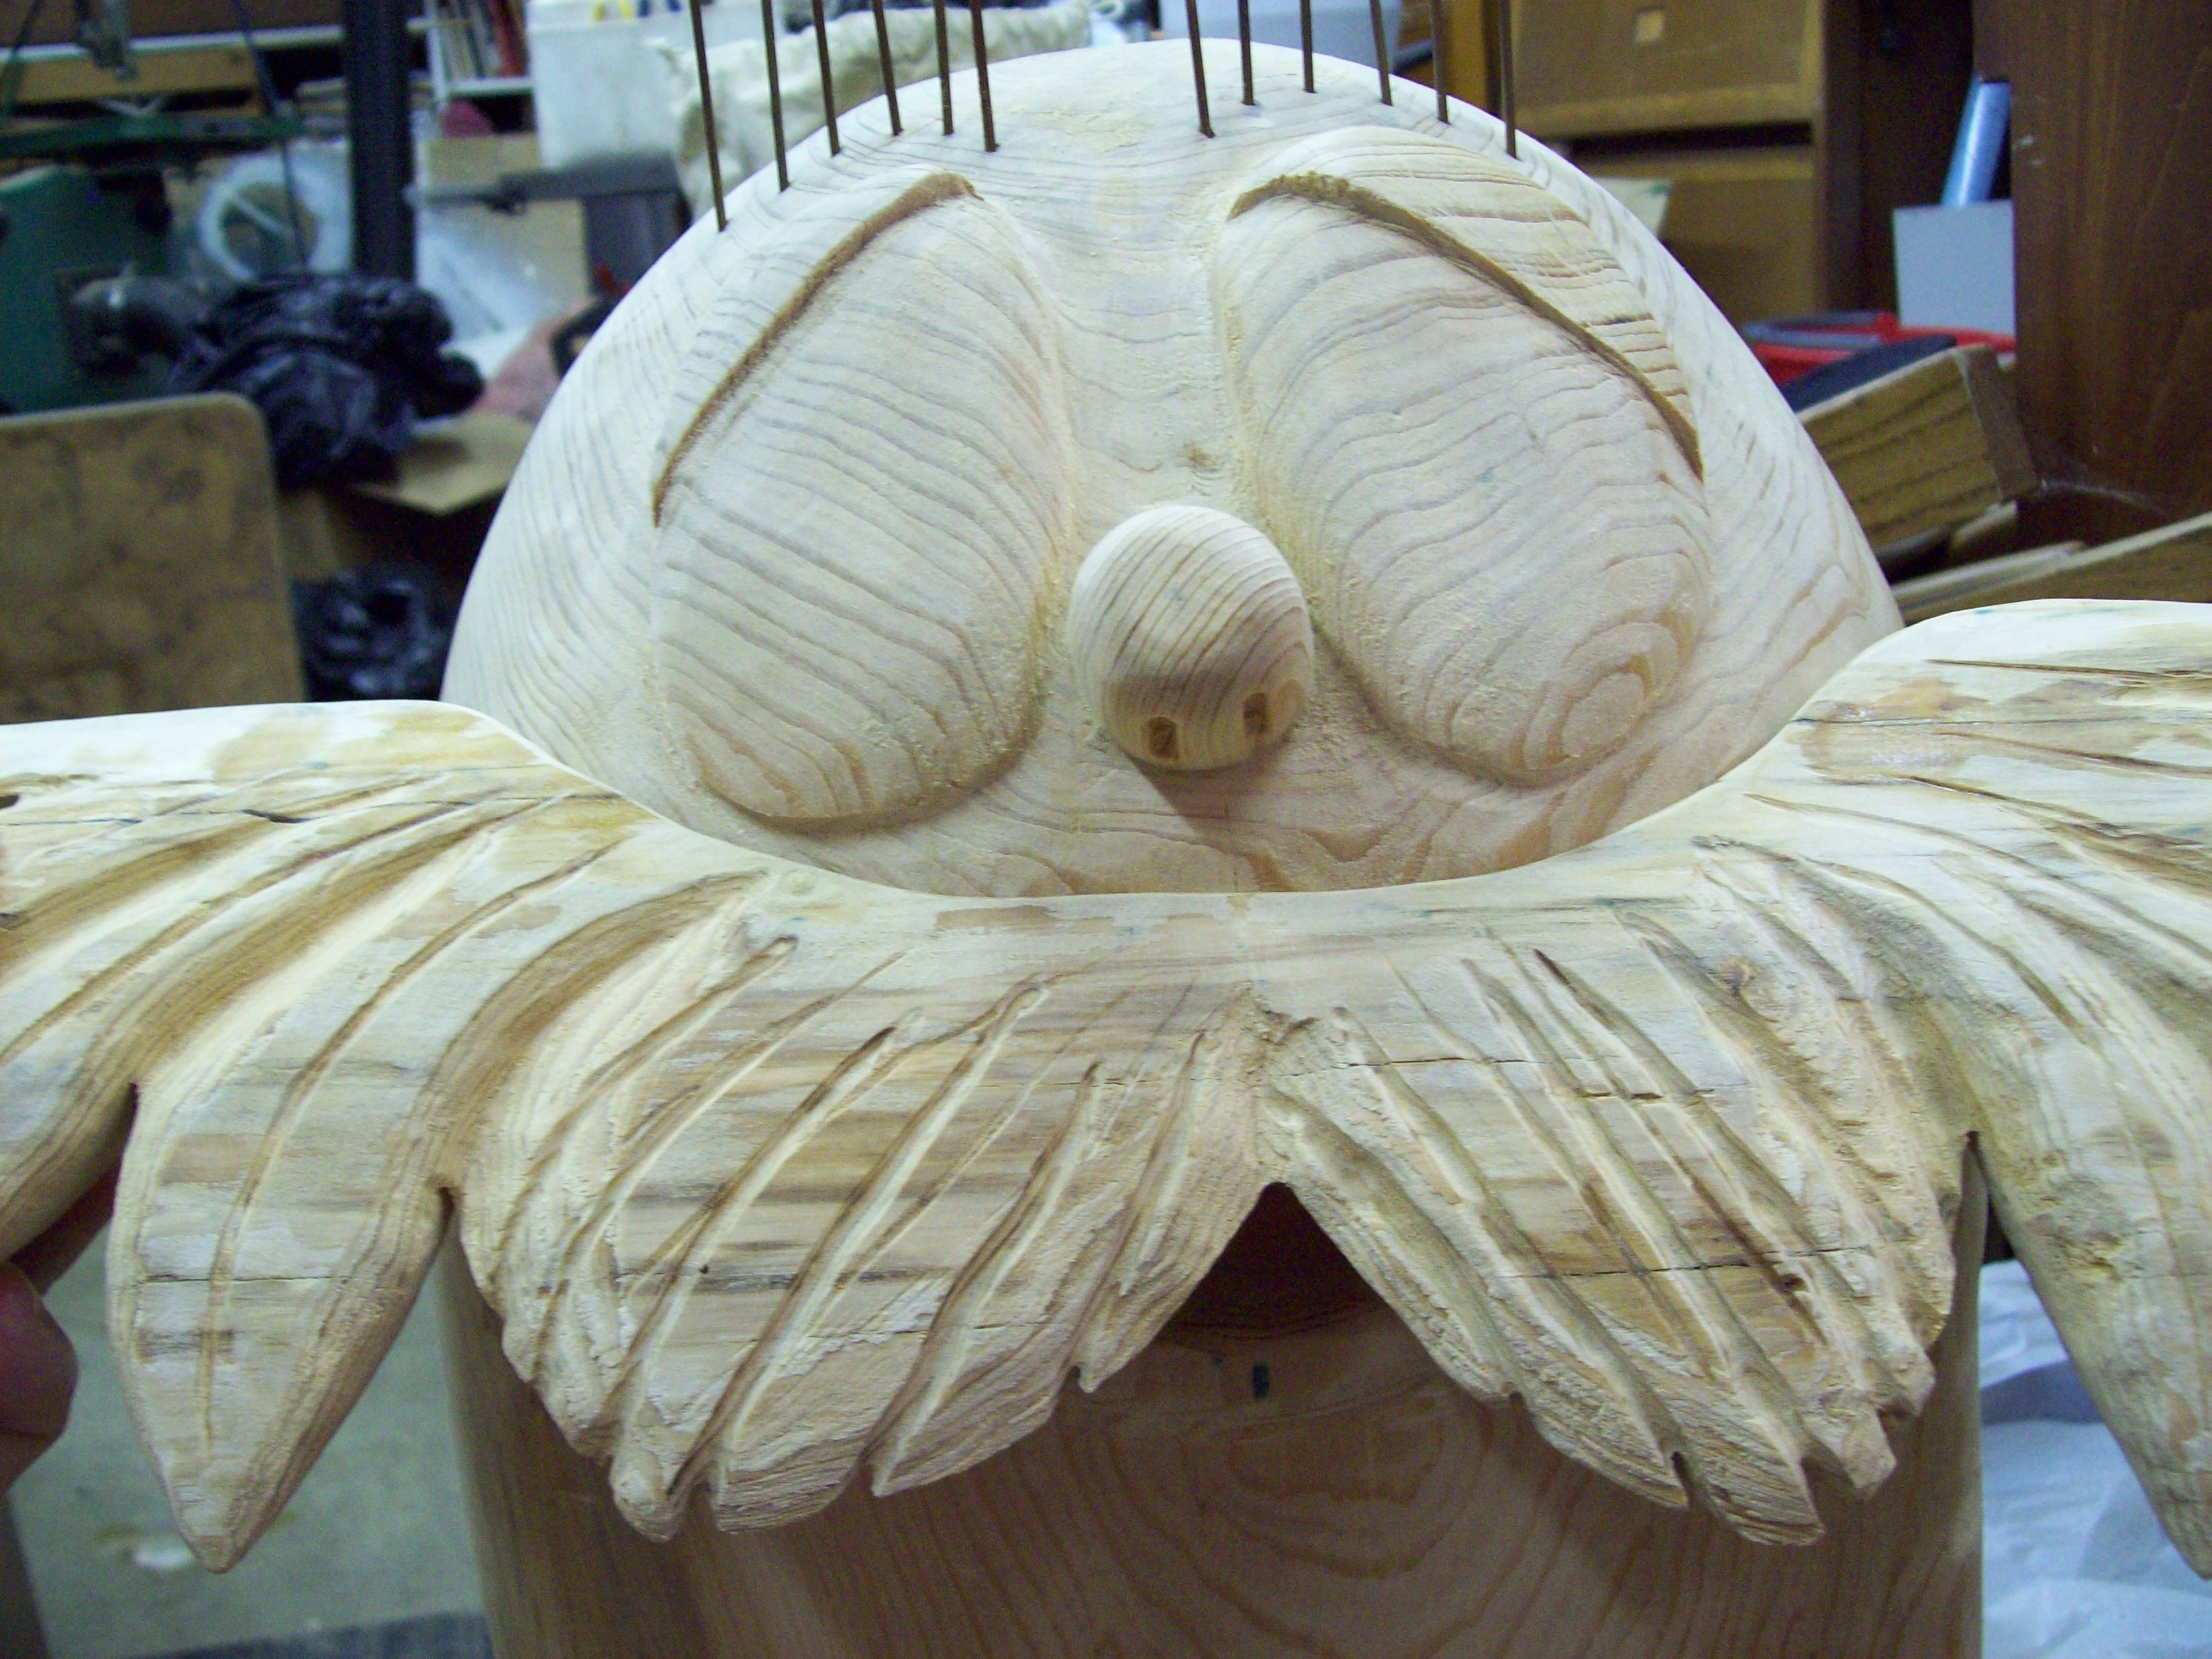 Lorax Carving 9